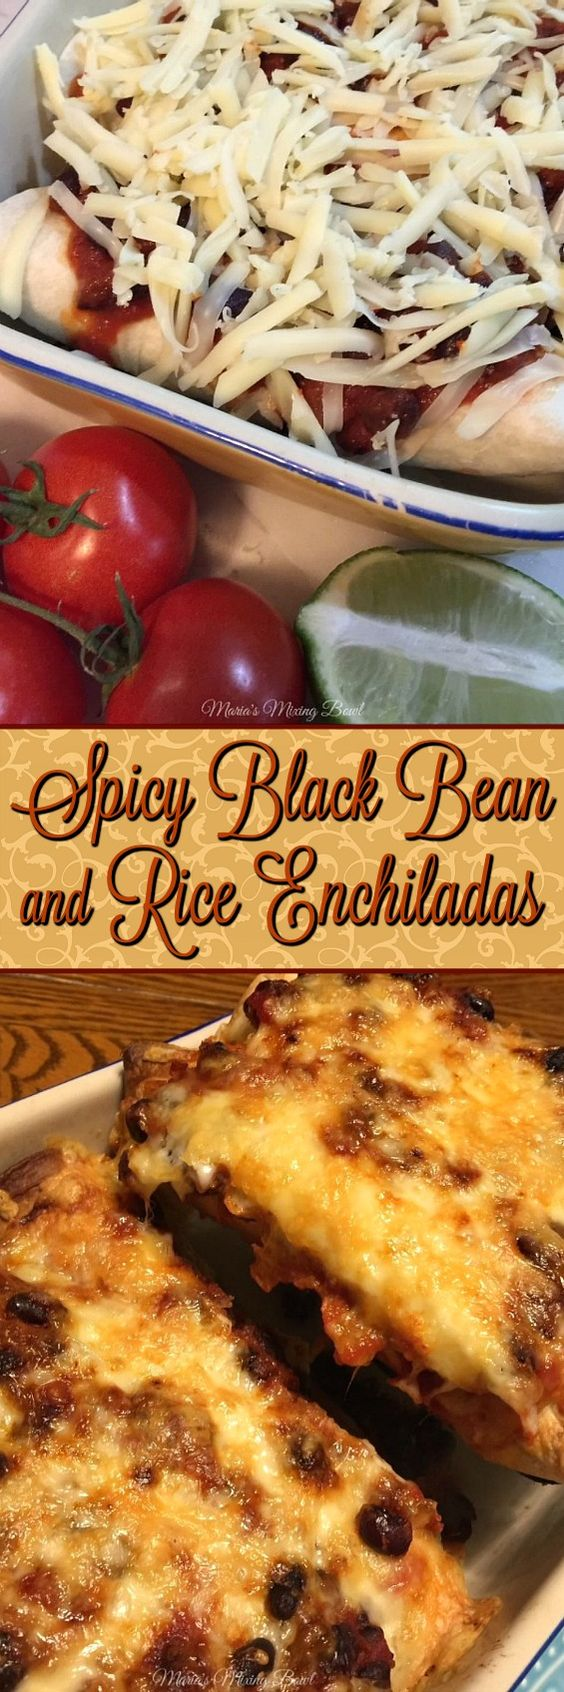 Spicy Black Bean and Rice Enchiladas-delicious comfort food for my family. When everyone in the family loves it you know it has to be good!